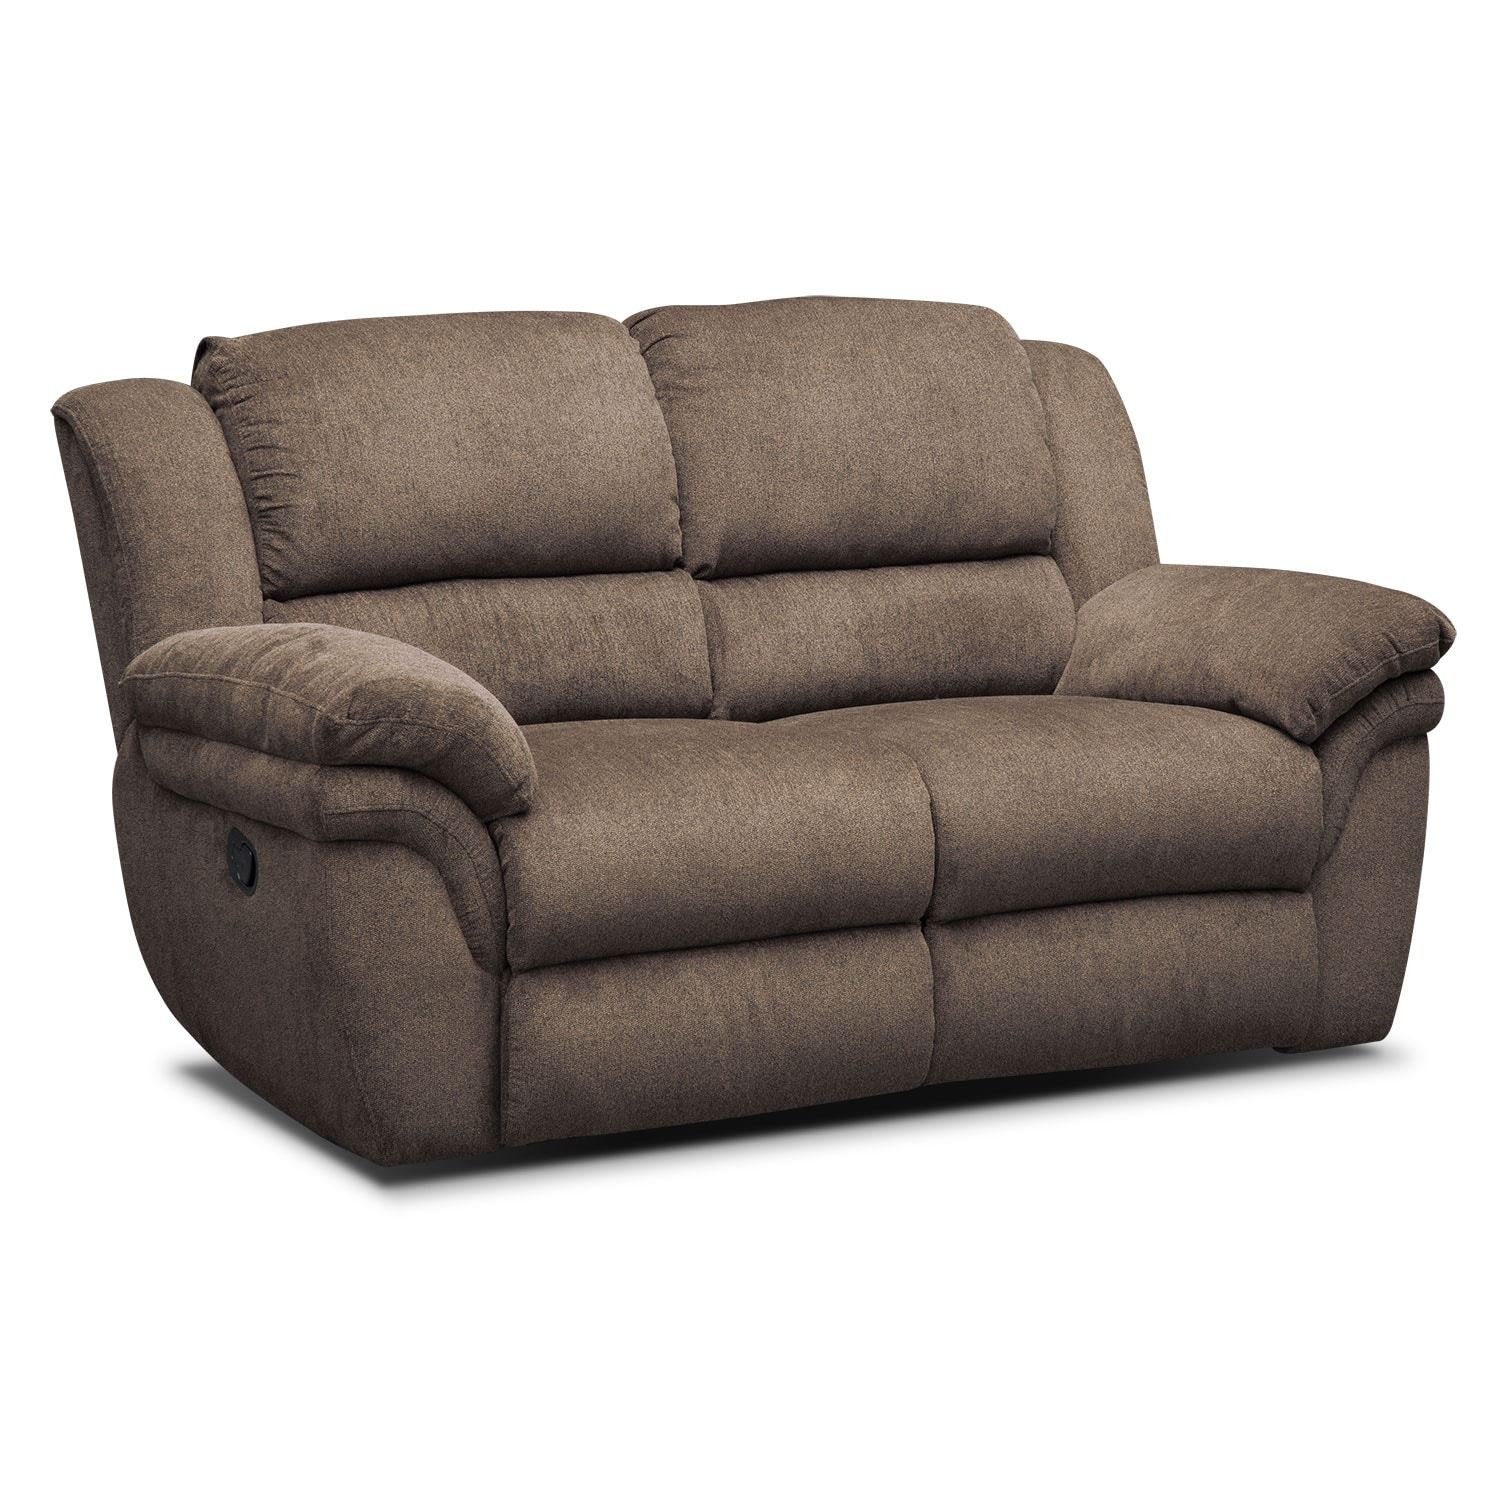 Living Room Furniture - Aldo Manual Reclining Loveseat - Mocha